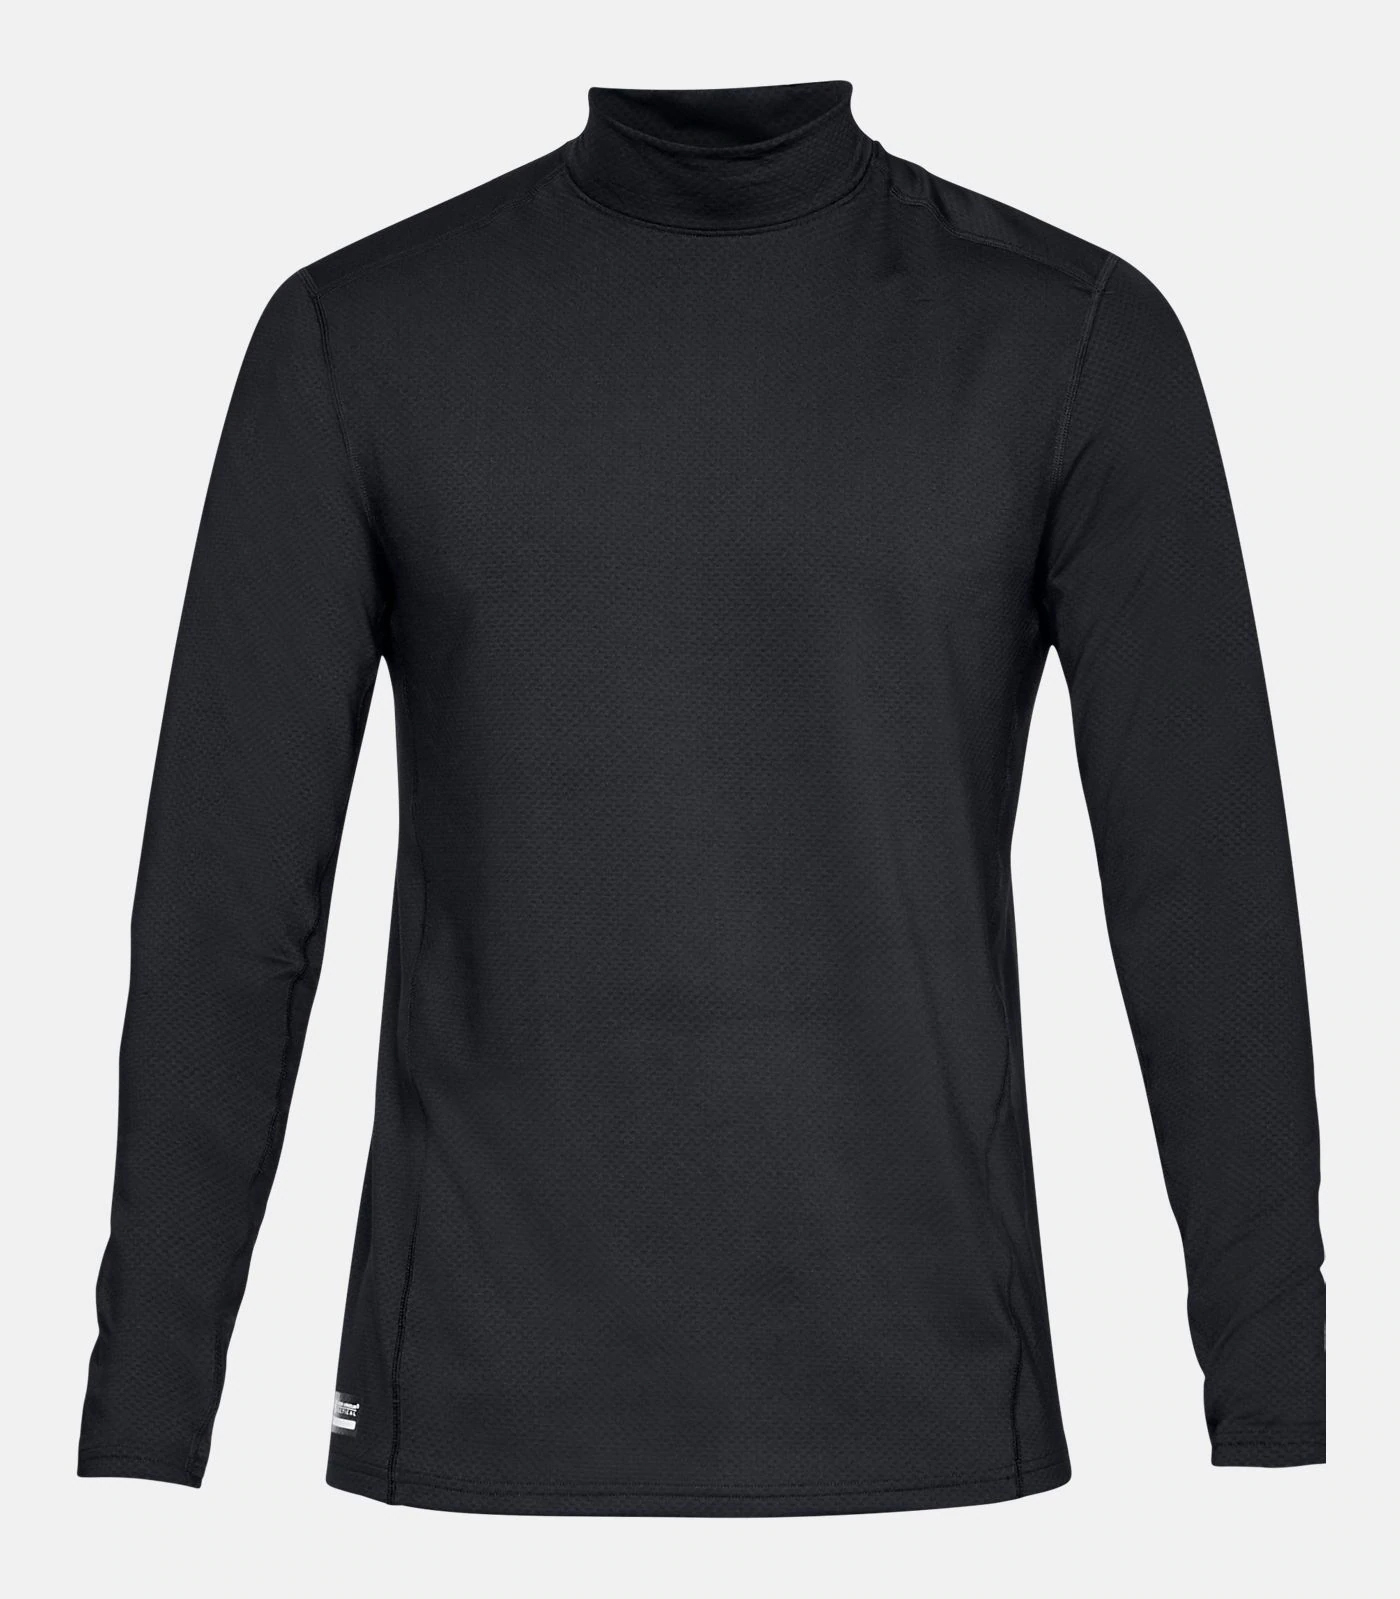 MENS_BASE-LAYERS_ReactorMock_UAR1316935001_04